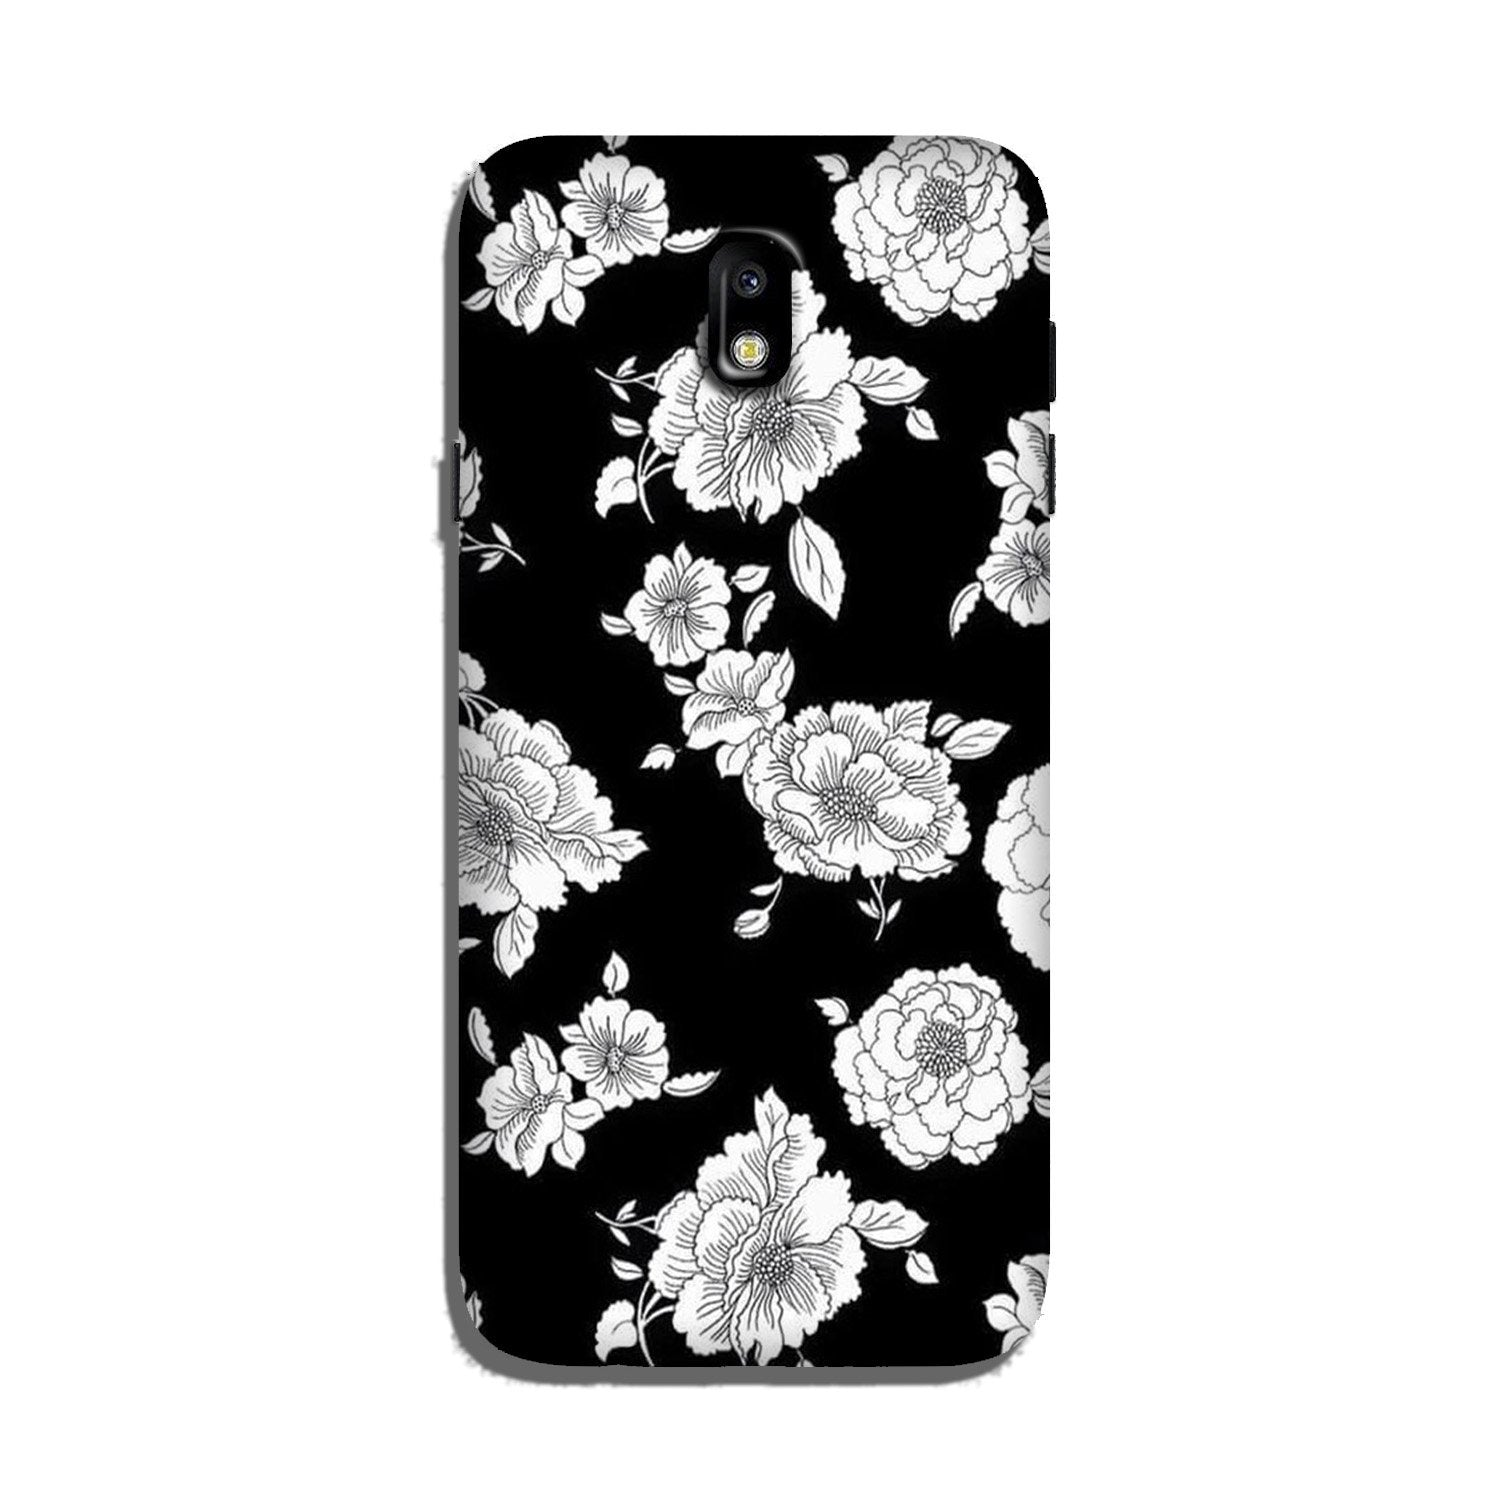 White flowers Black Background Case for Galaxy J5 Pro